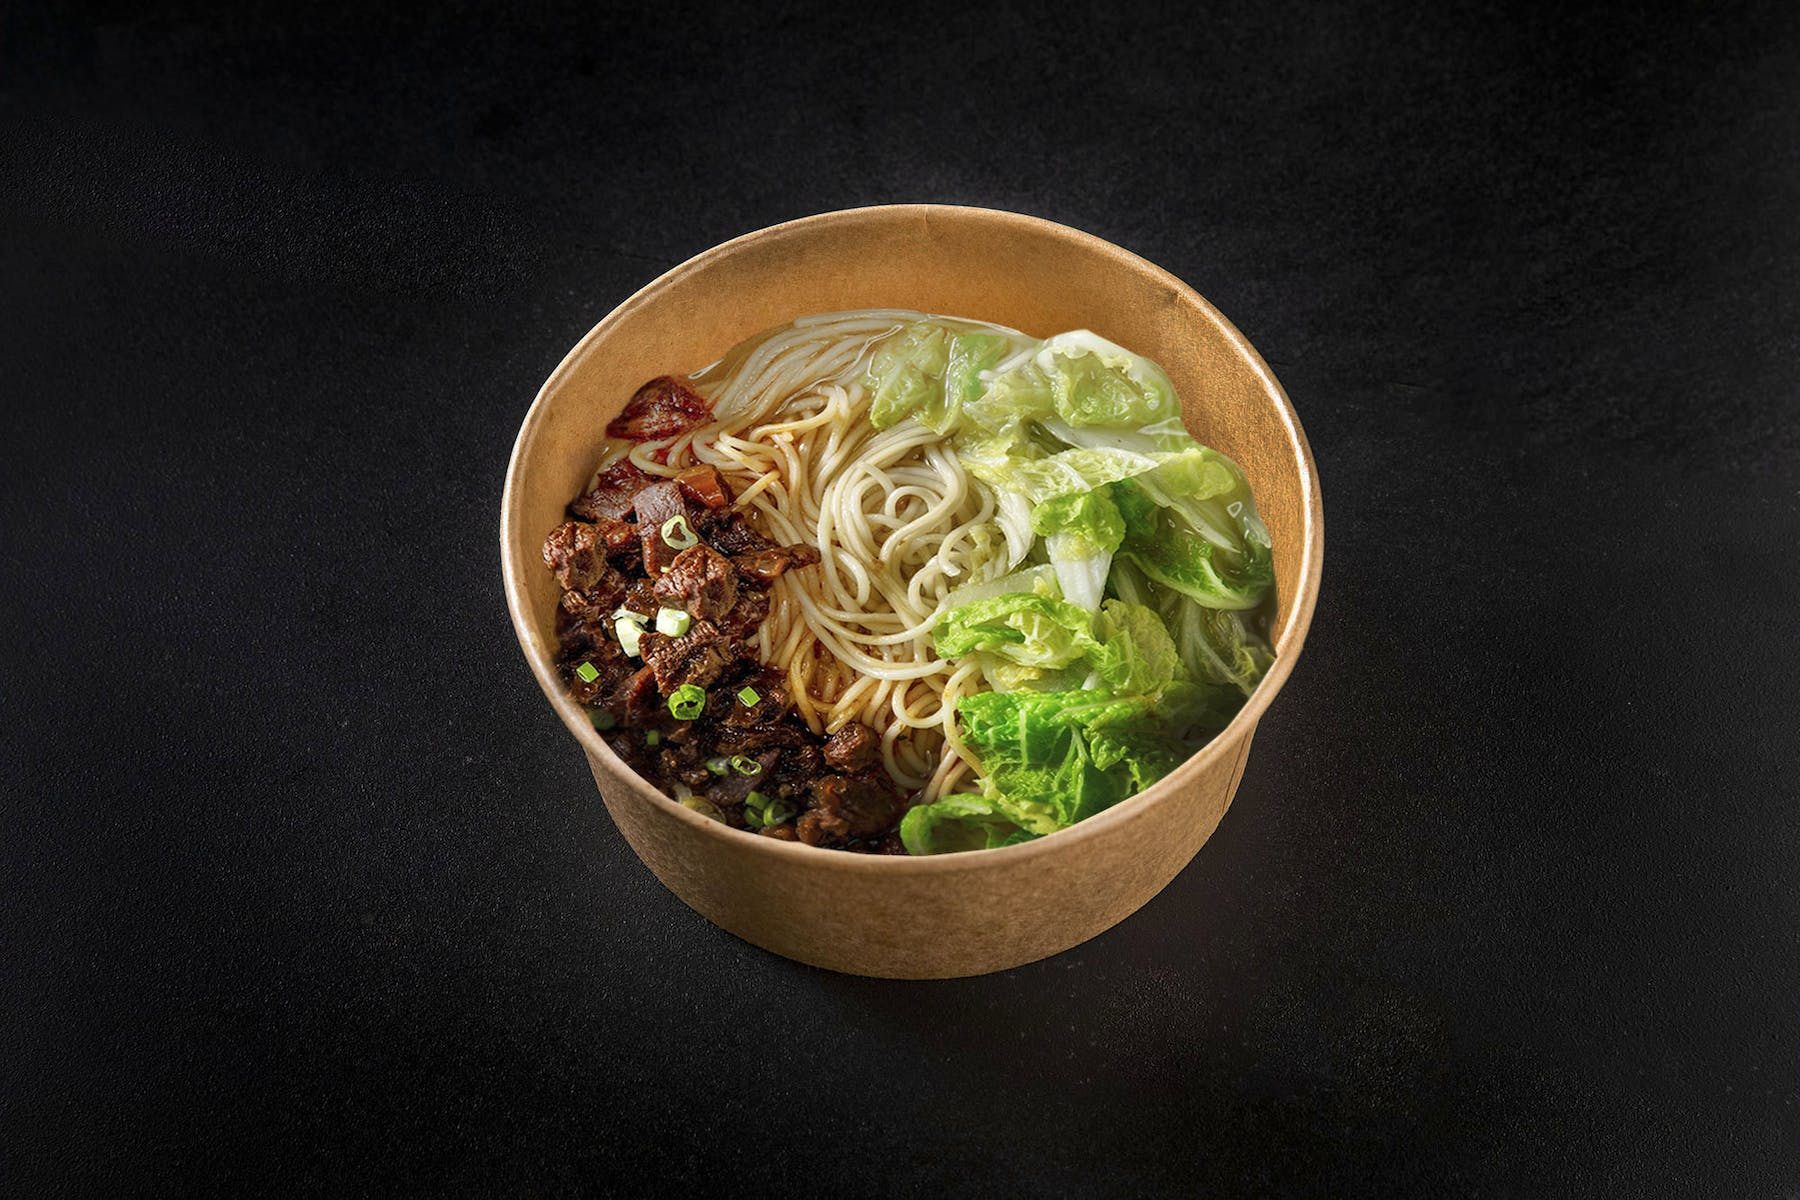 a bowl of noodles, meat, and veggies